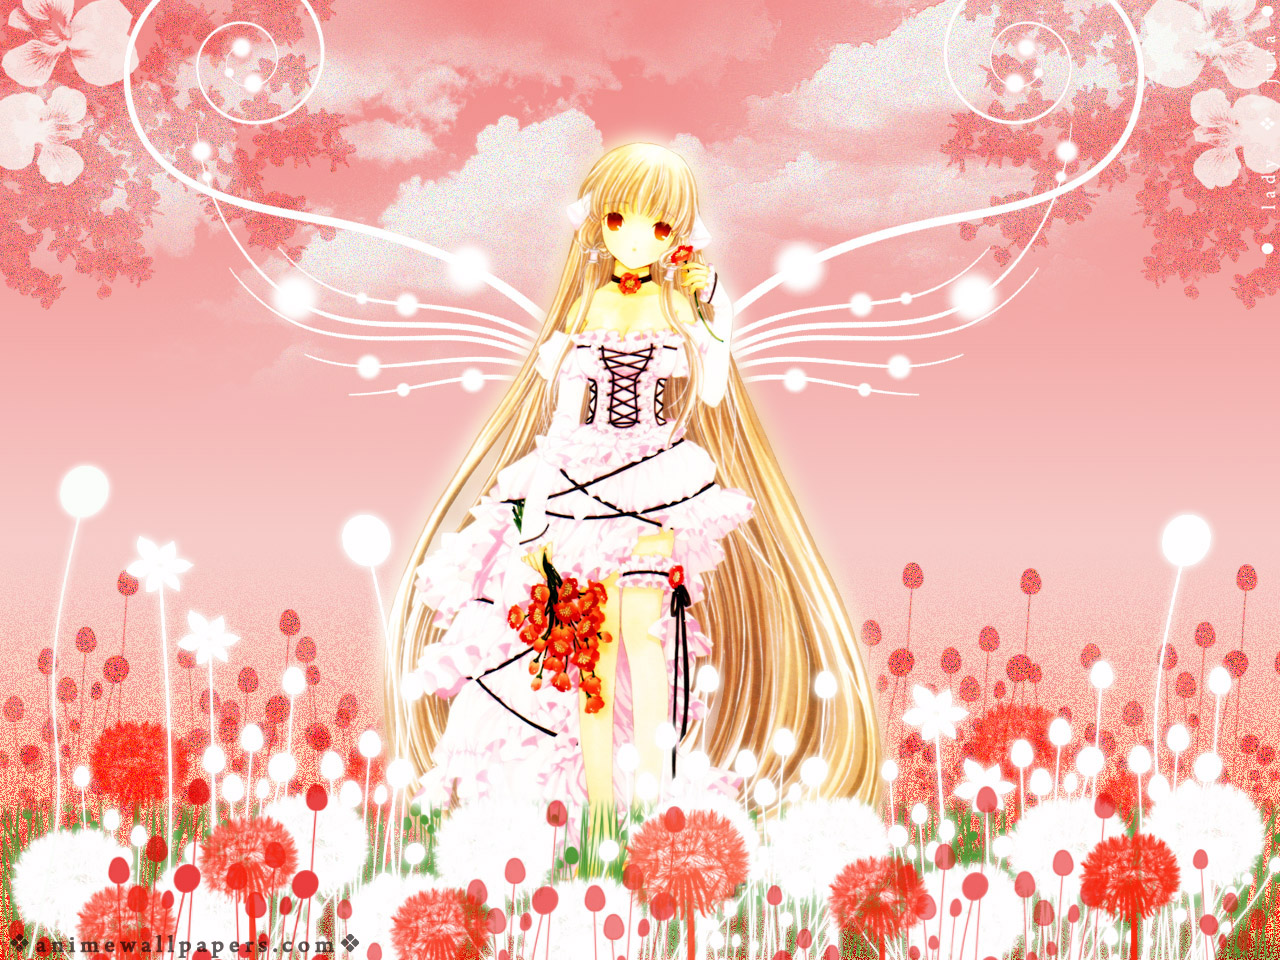 Chobits Anime Wallpaper # 58